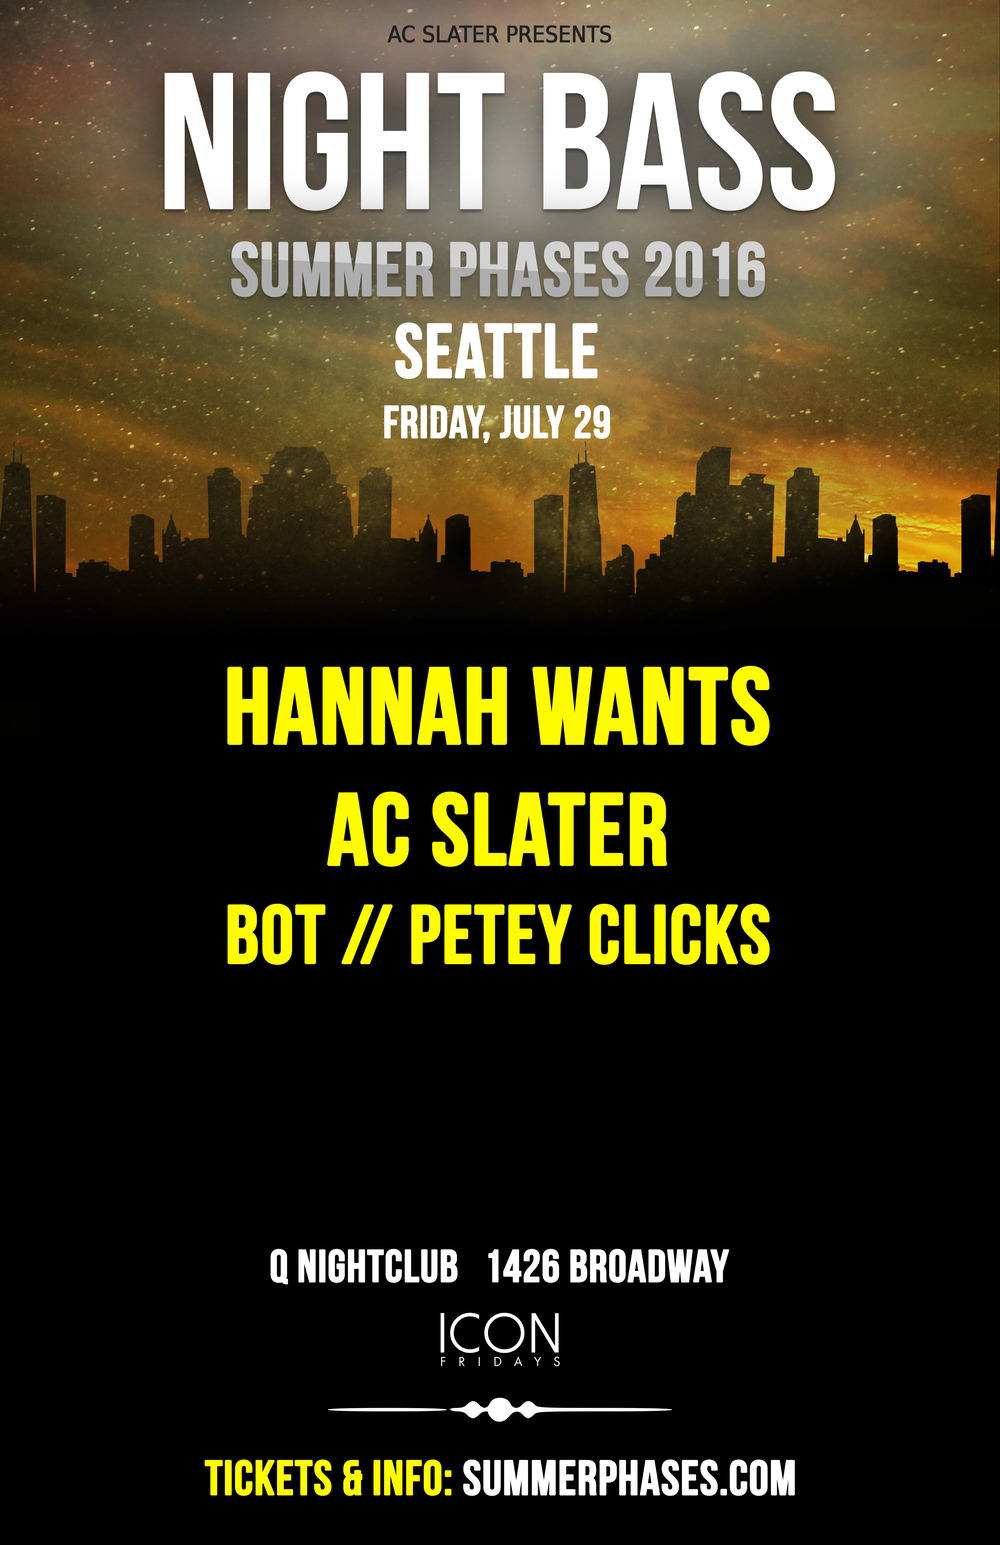 SEATTLE / JULY 29